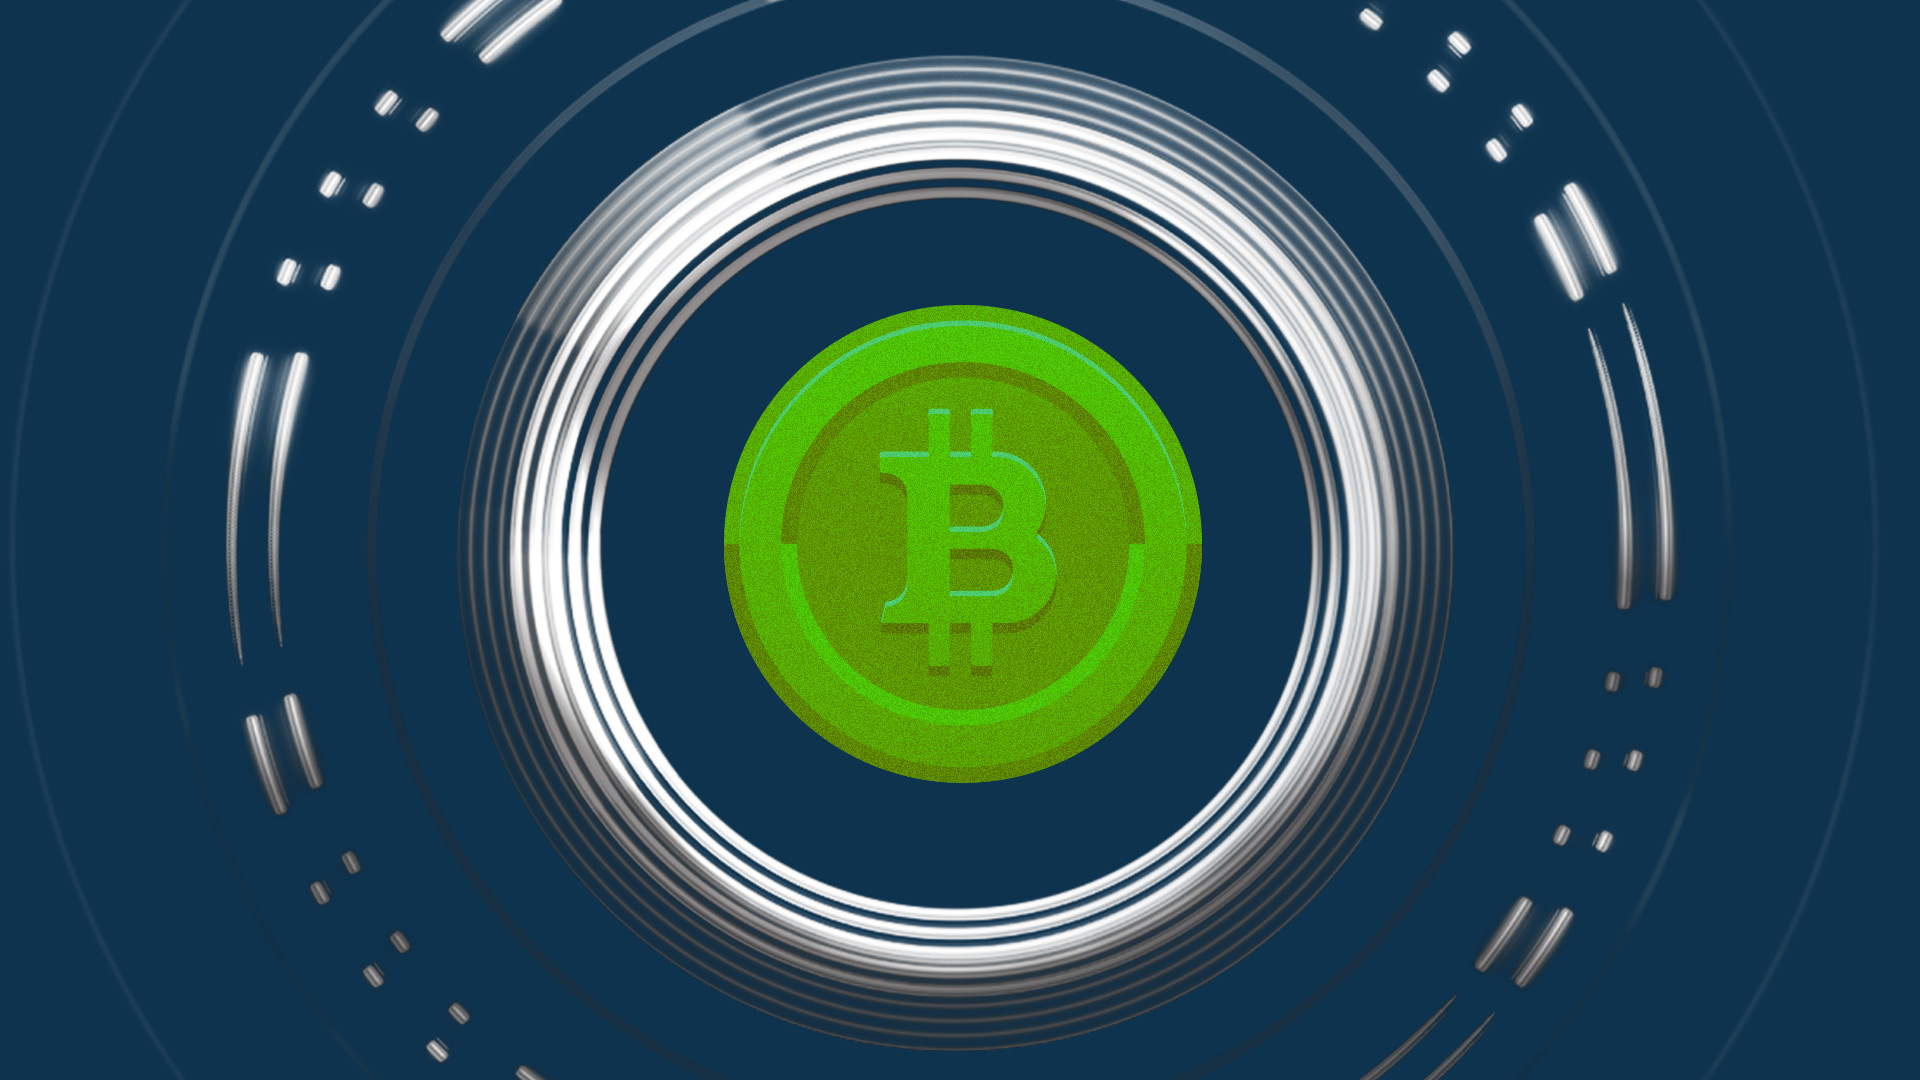 Aggregated open interest for bitcoin futures hit an all-time high on Saturday